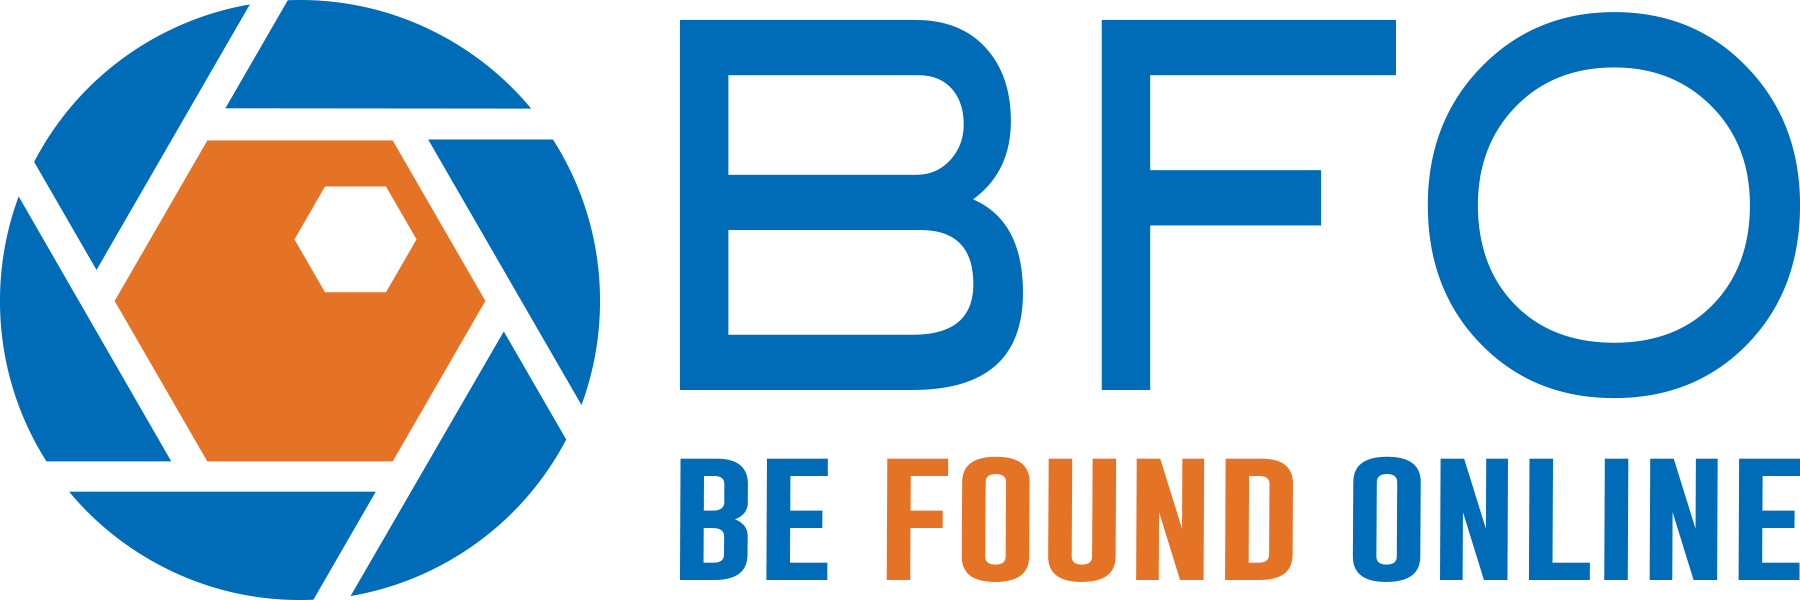 be found